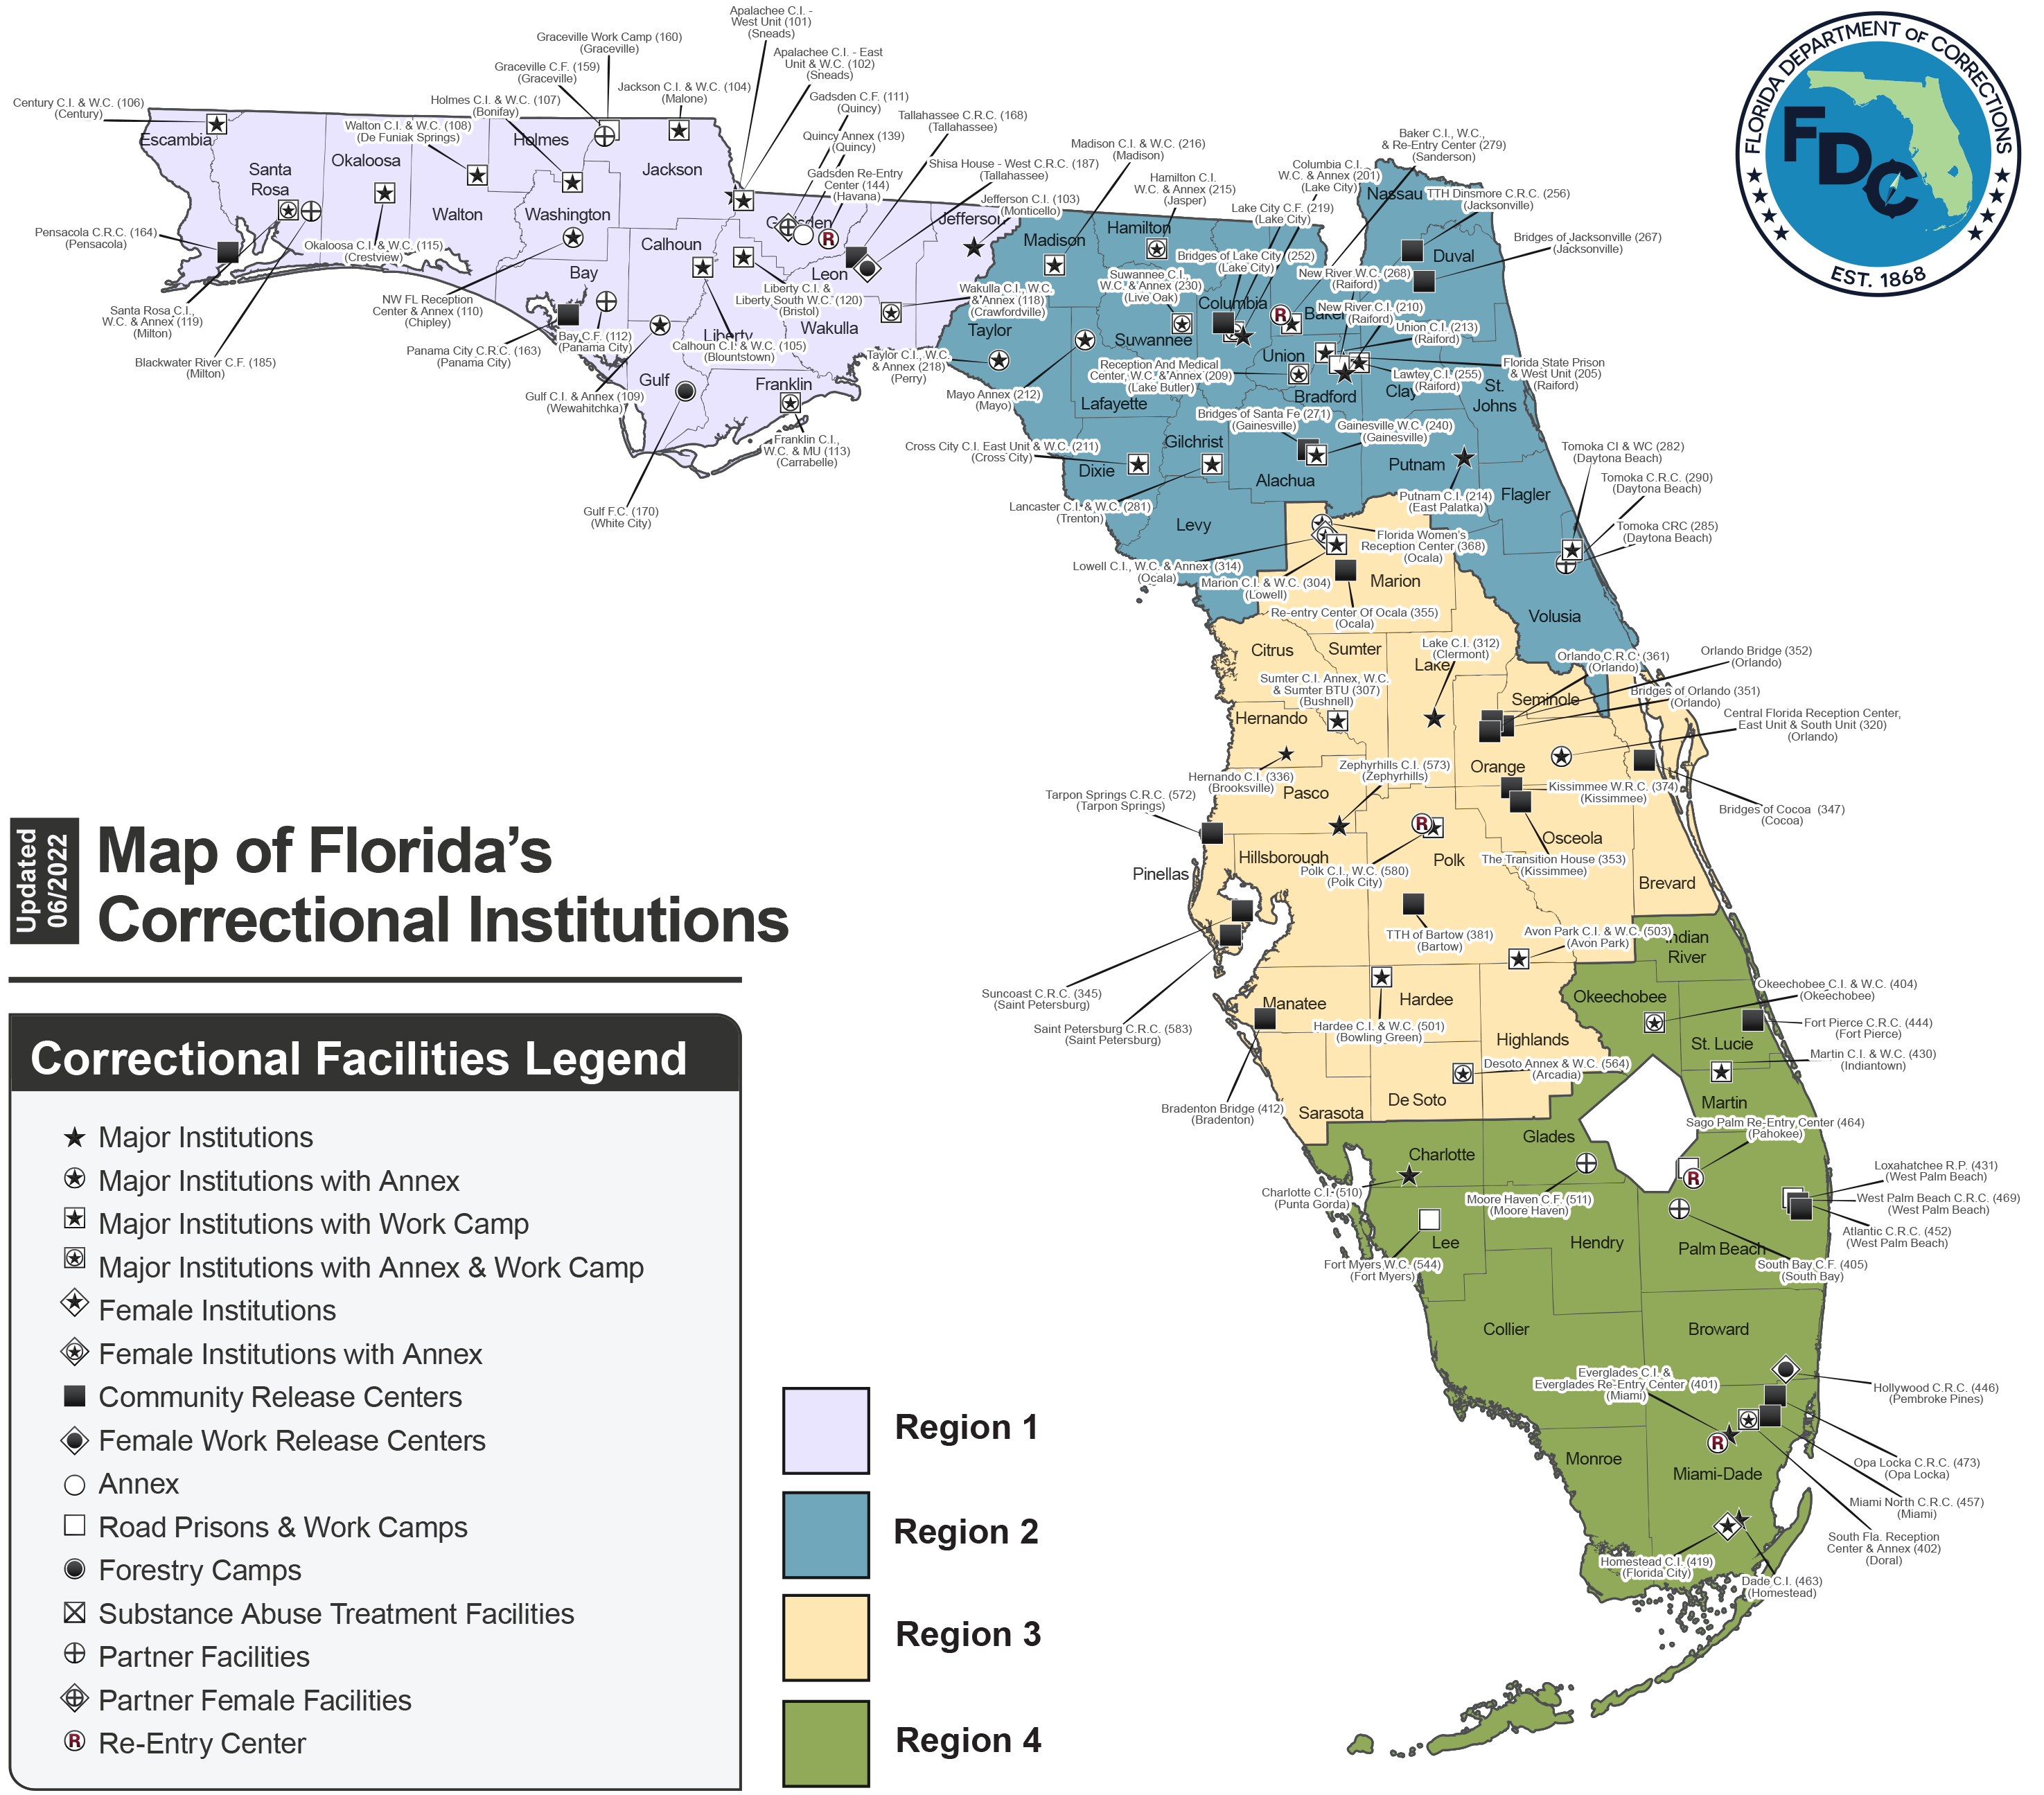 Large Institutions Map -- Florida Department of Corrections